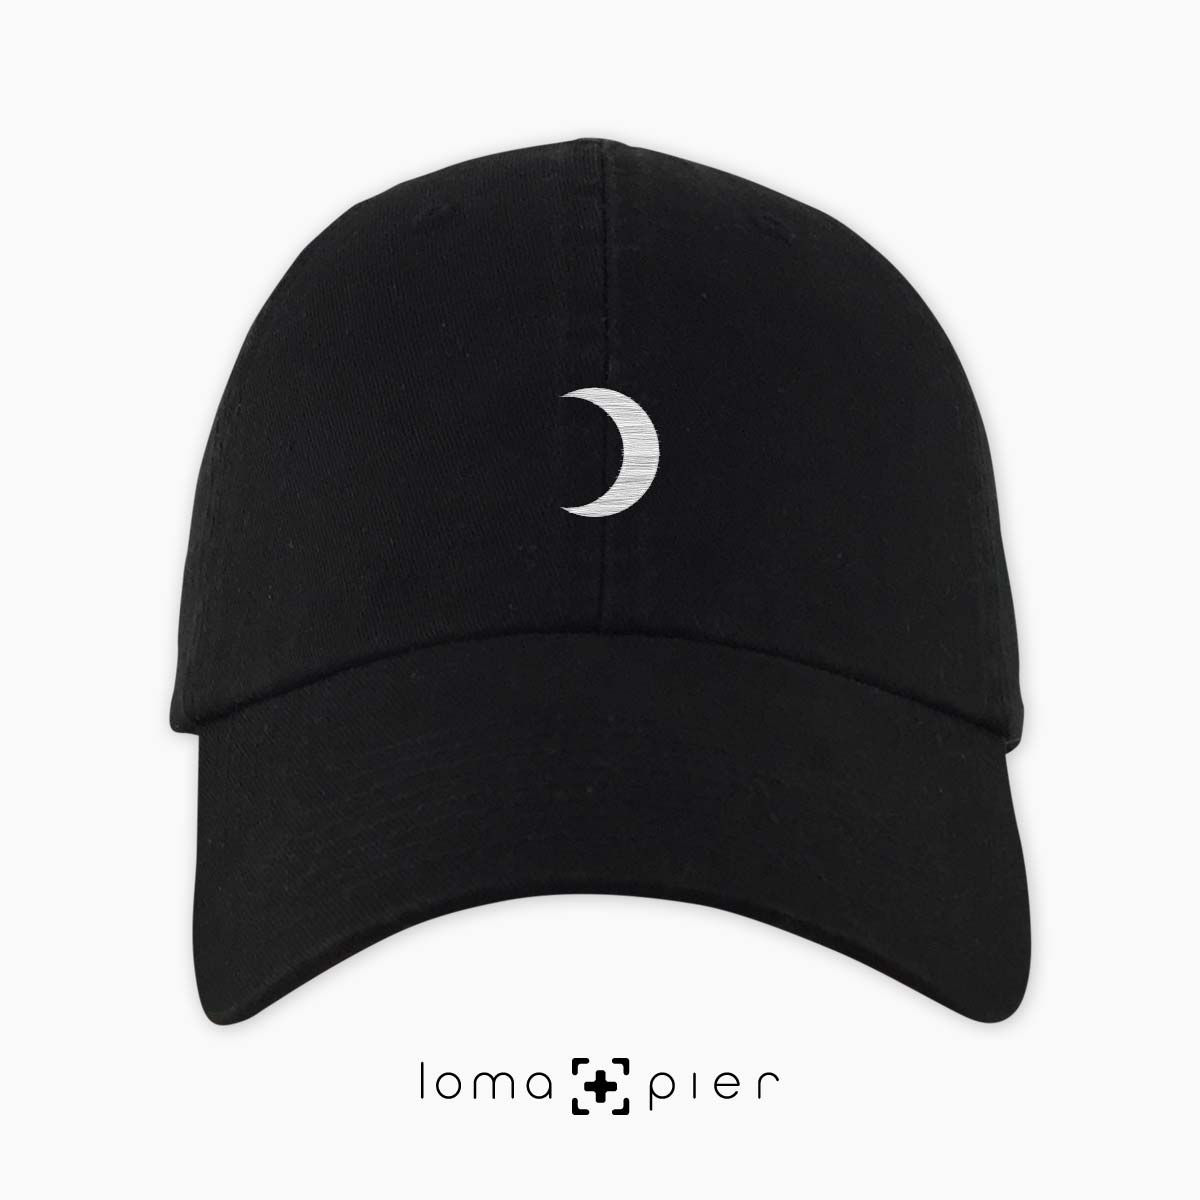 a42985d4eb0dd MOON icon embroidered on a black dad hat by loma+pier hat store made in